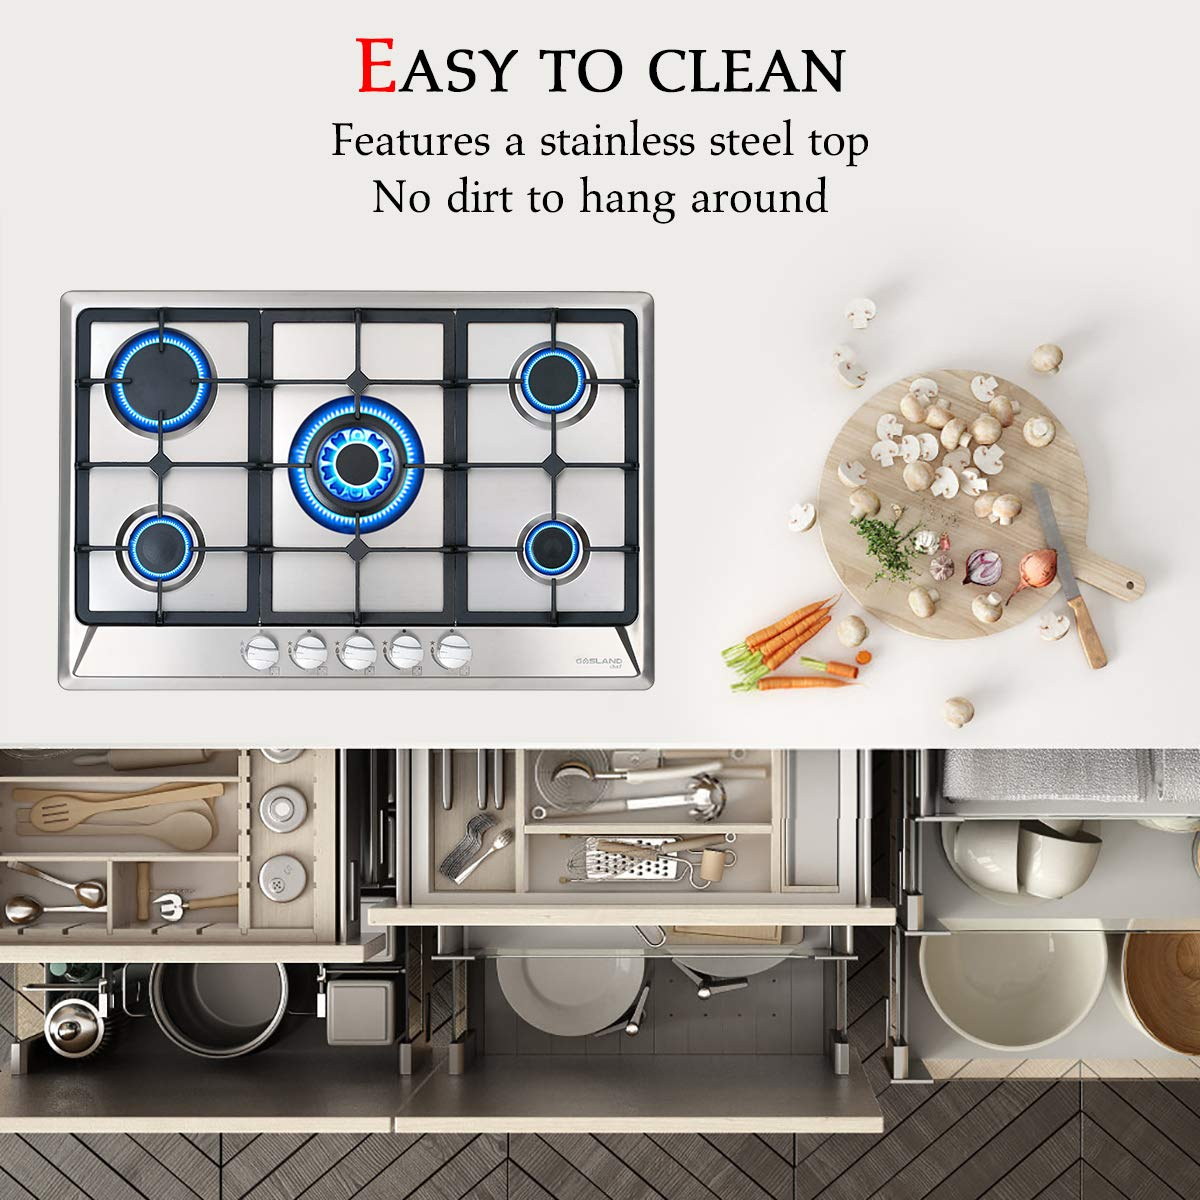 CSA Certified Italy Sabaf 5 Burner Gas Cooktops Gas Cooktop Thermocouple Safety Protection 30 Stainless Steel Gas Hob LPG /& Natural Gas Stove Top 30 Inch Built-in Gas Cooktop